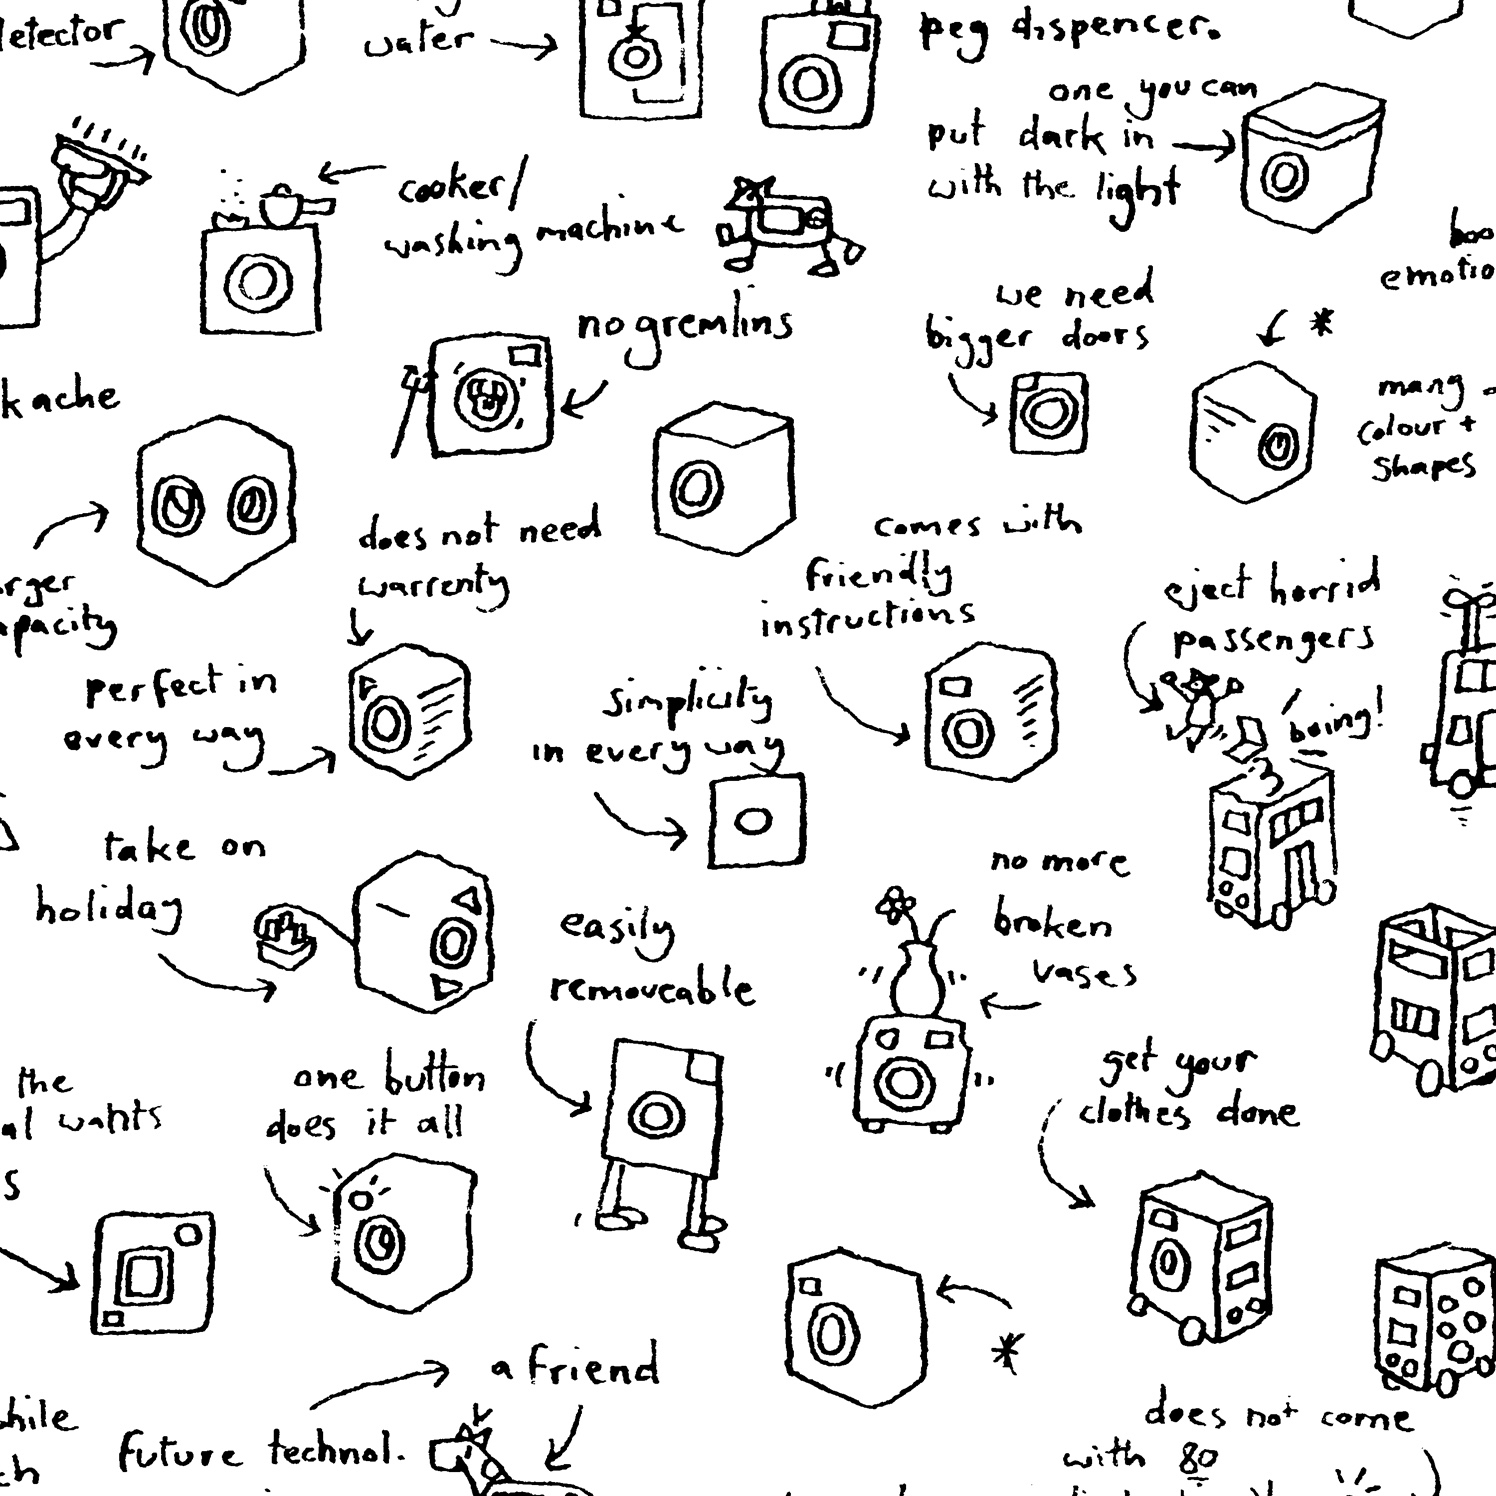 Brainstorm Hand Drawn Washing Machine